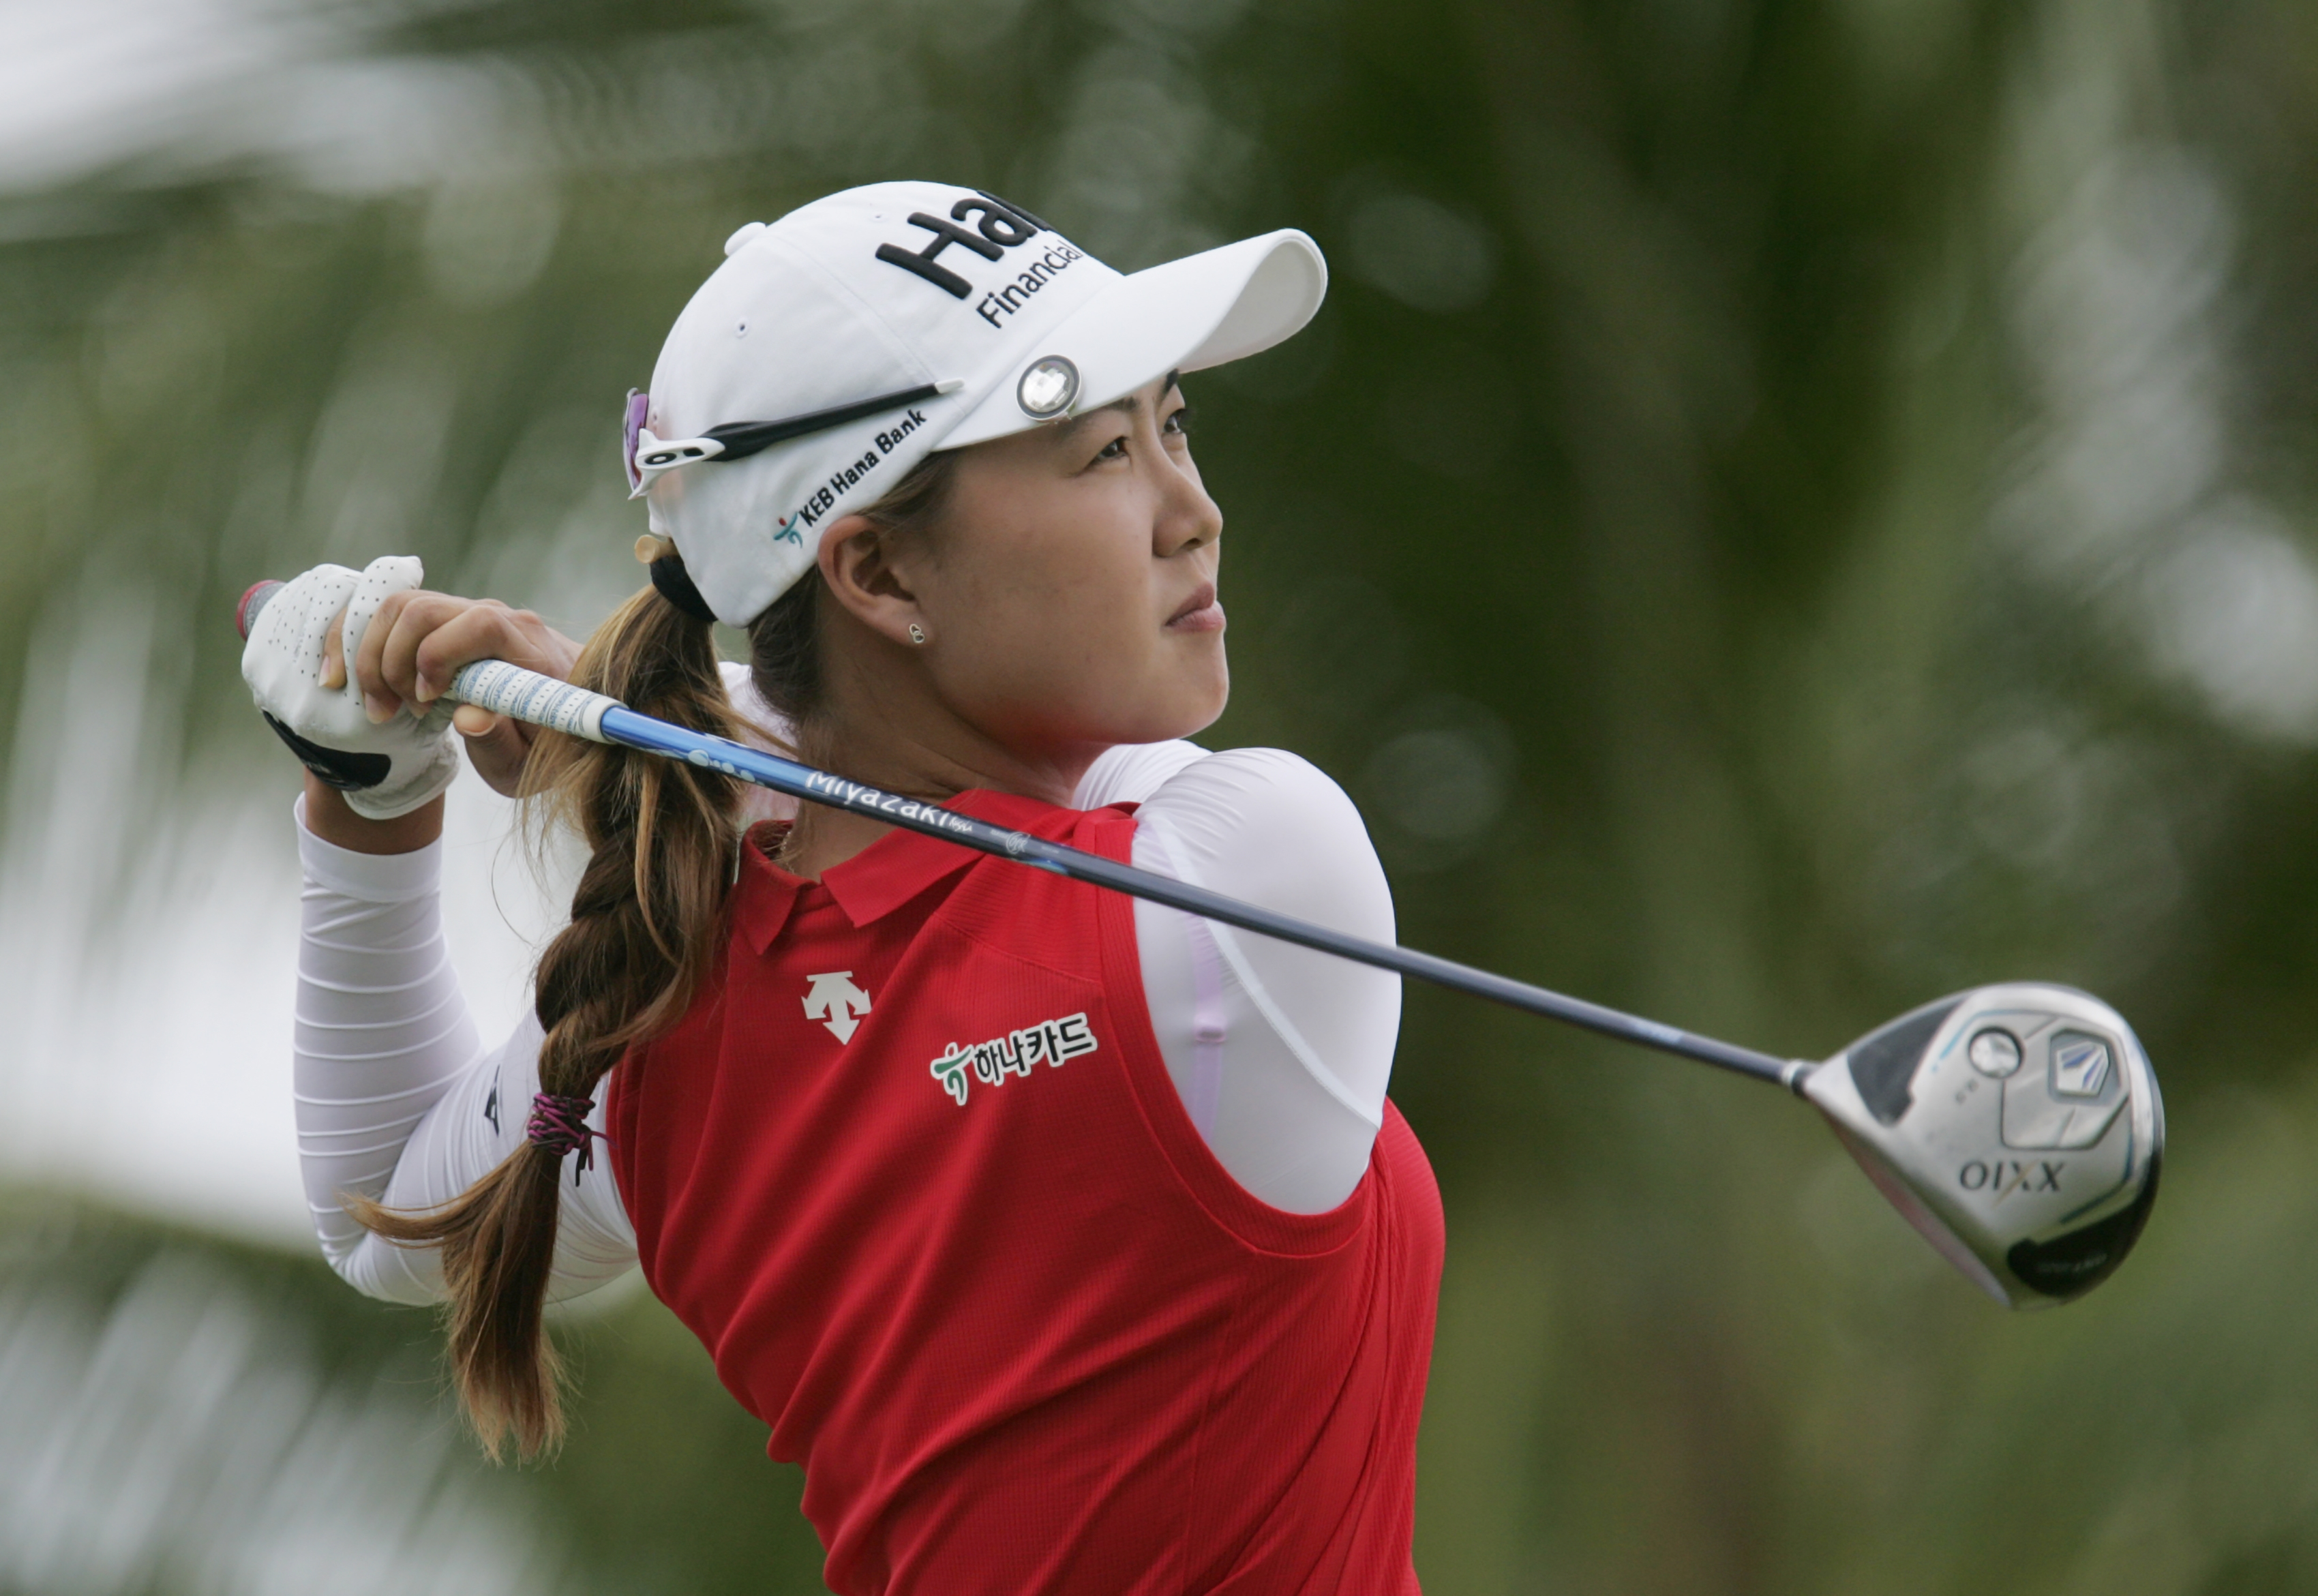 Minjee Lee, of Australia, drives off the second tee during the final round of the Lotte Championship LPGA golf tournament, Saturday, April 16, 2016, in Kapolei, Hawaii. (AP Photo/Hugh Gentry)